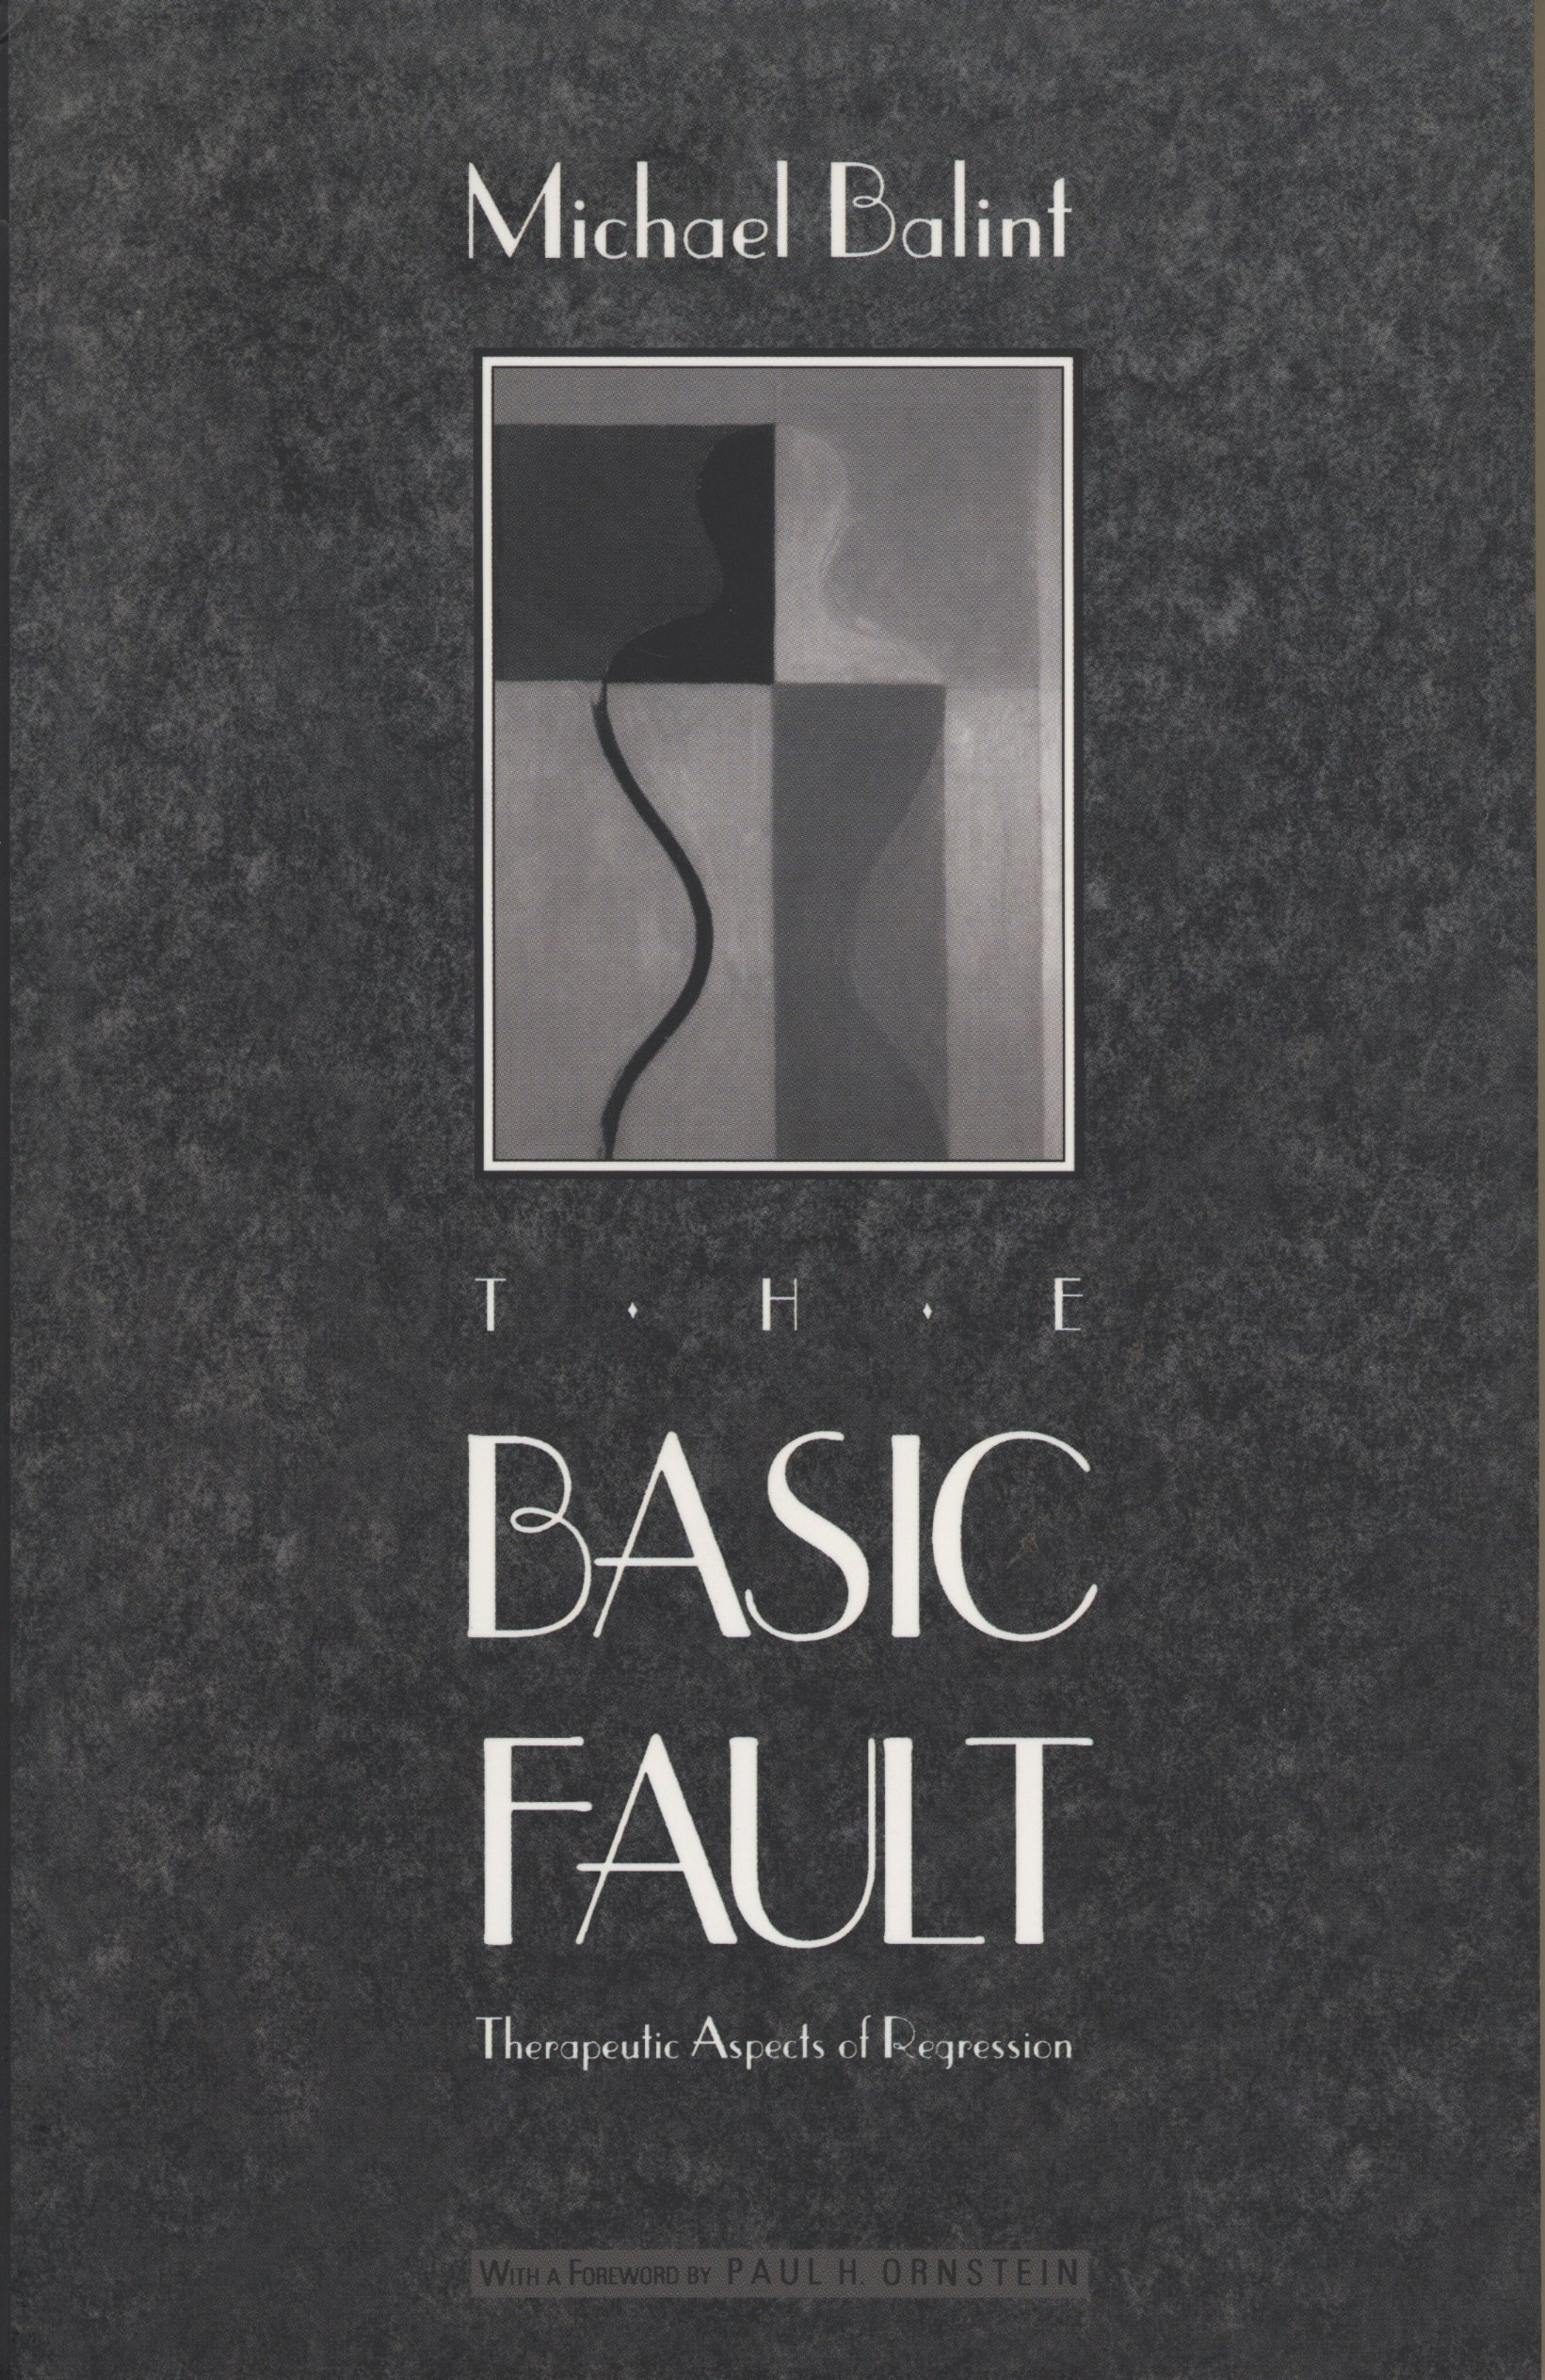 Amazon | The Basic Fault: Ther...